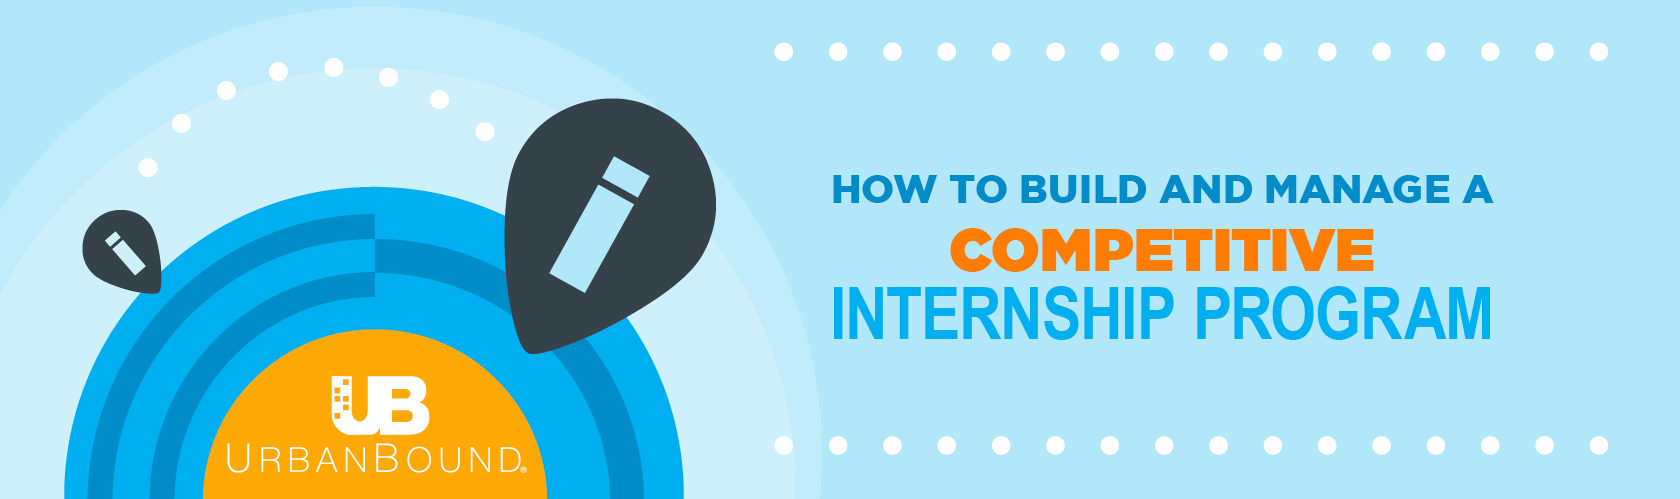 HOW TO BUILD AND MANAGE INTERNSHIP PROGRAM WEBINAR .png